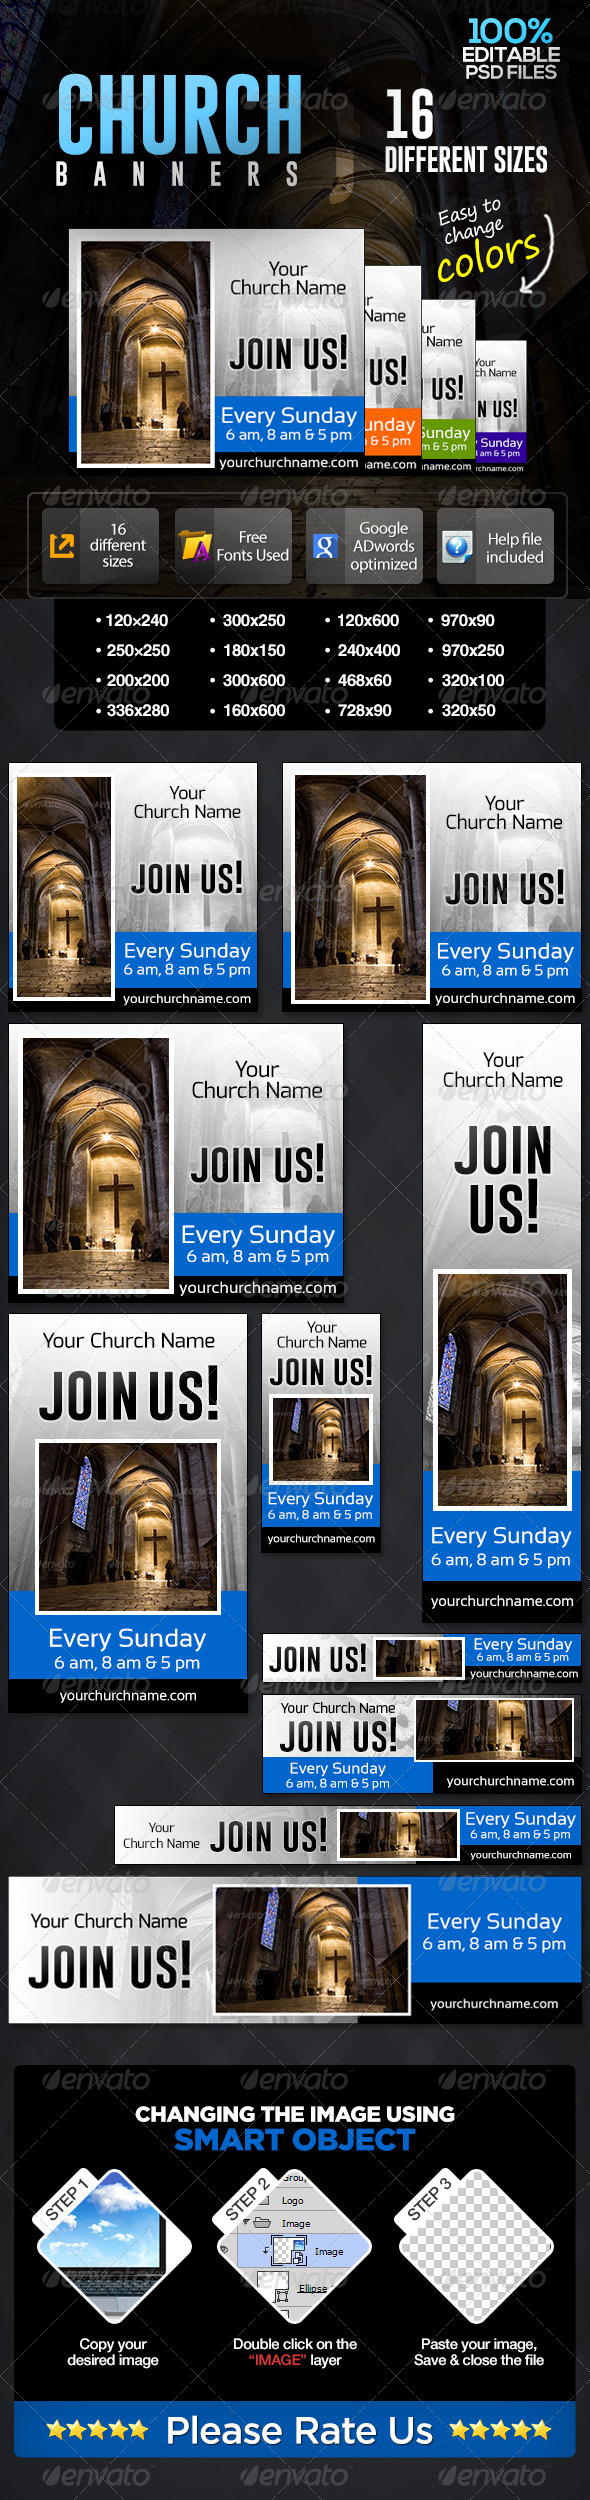 Church Prayer Time Banners - Banners & Ads Web Elements